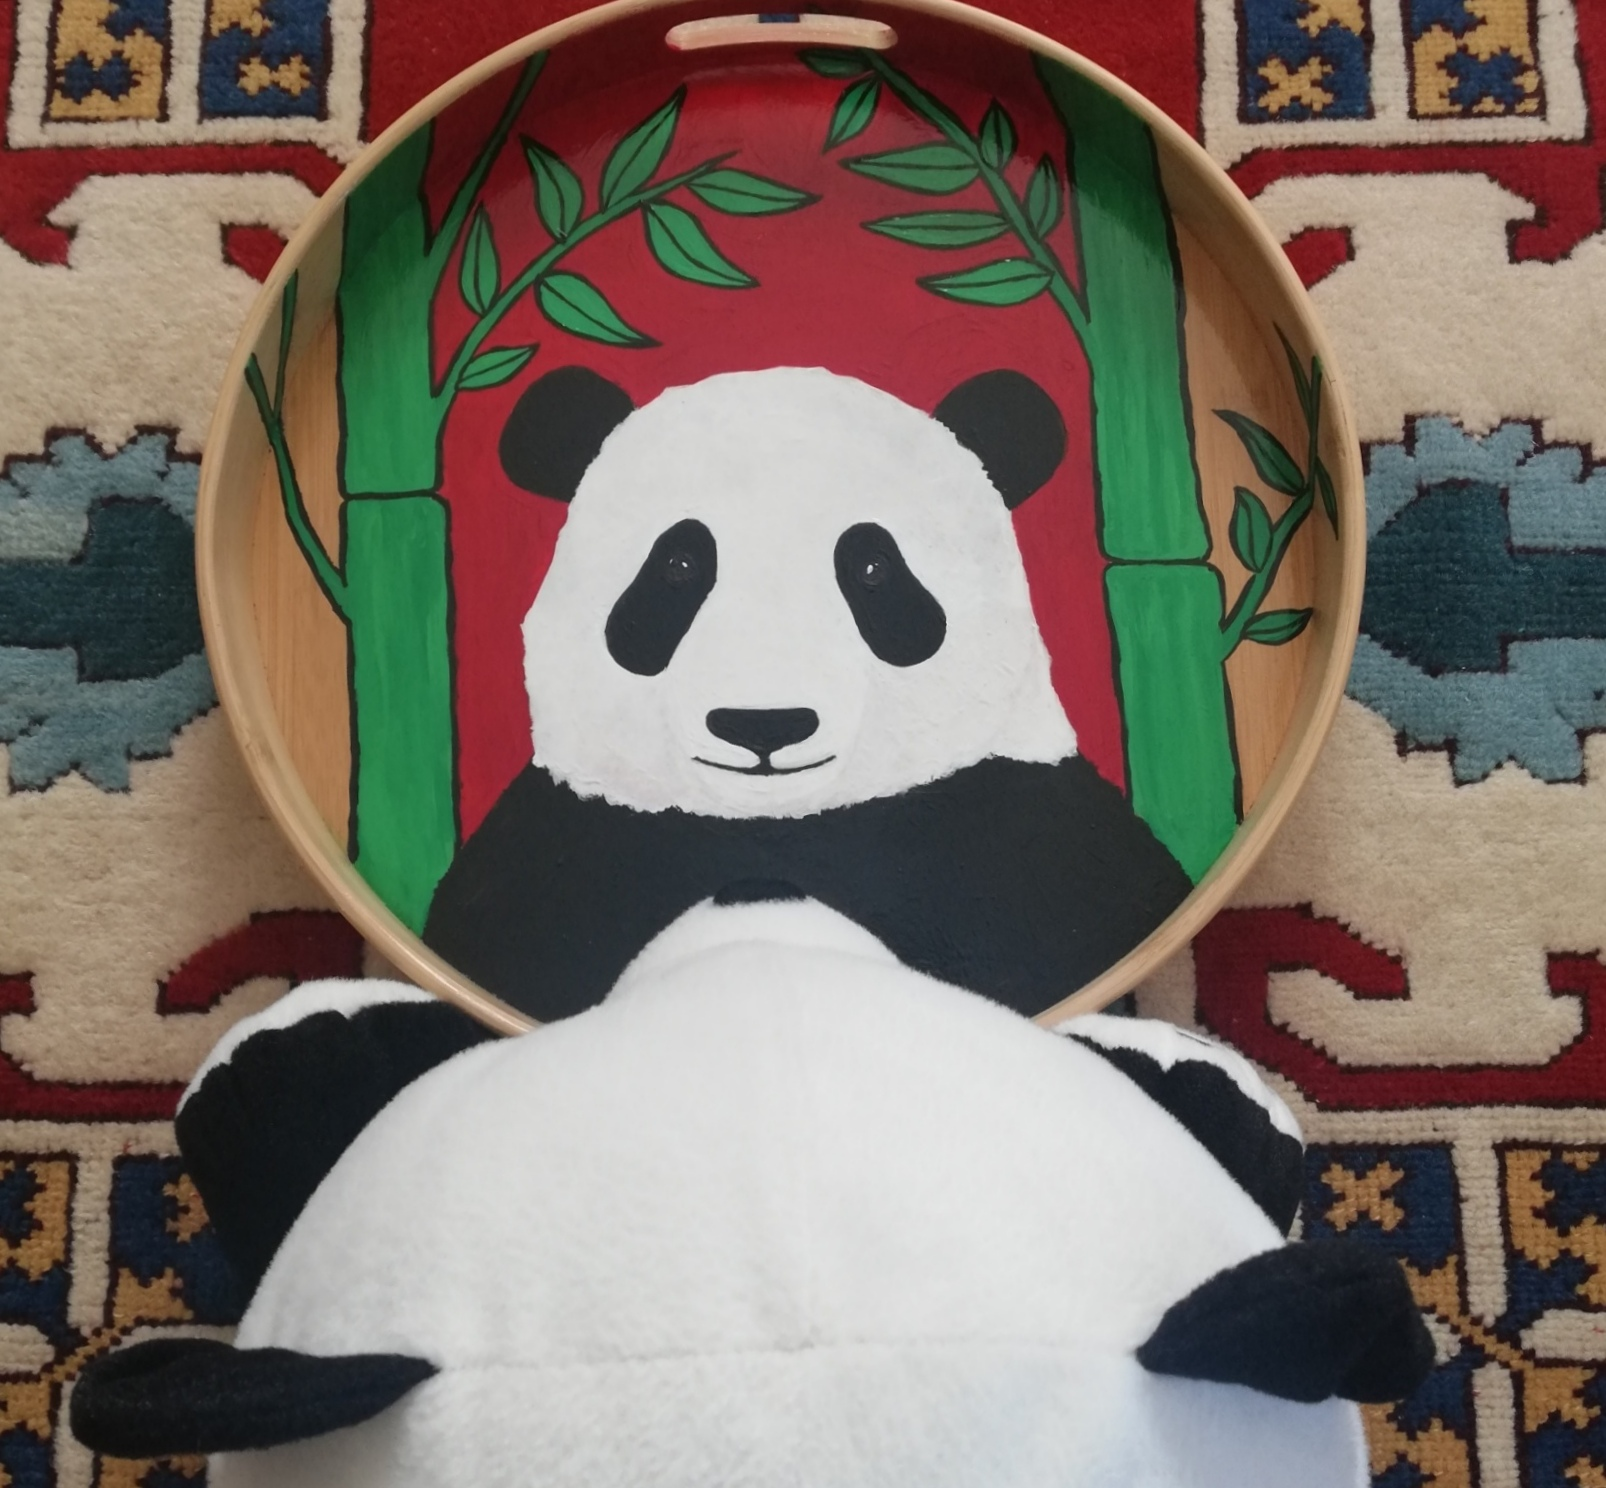 作品名:Panda Through the Looking Glass 绘制者:İrem Akkuşz,土耳其